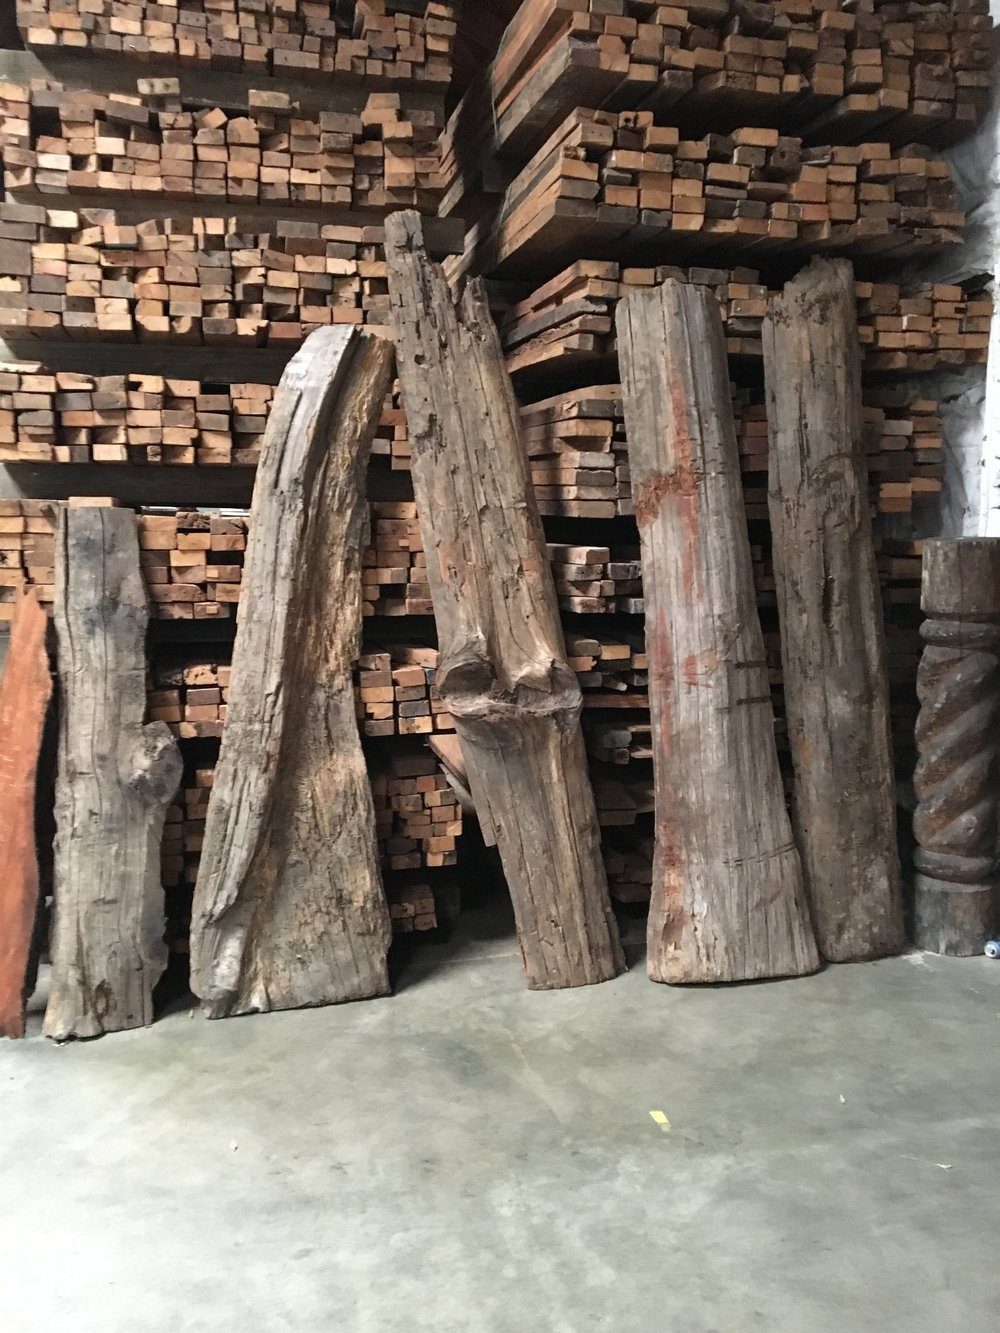 old growth redwood half rounds with stacks of reclaimed hardwood timbers